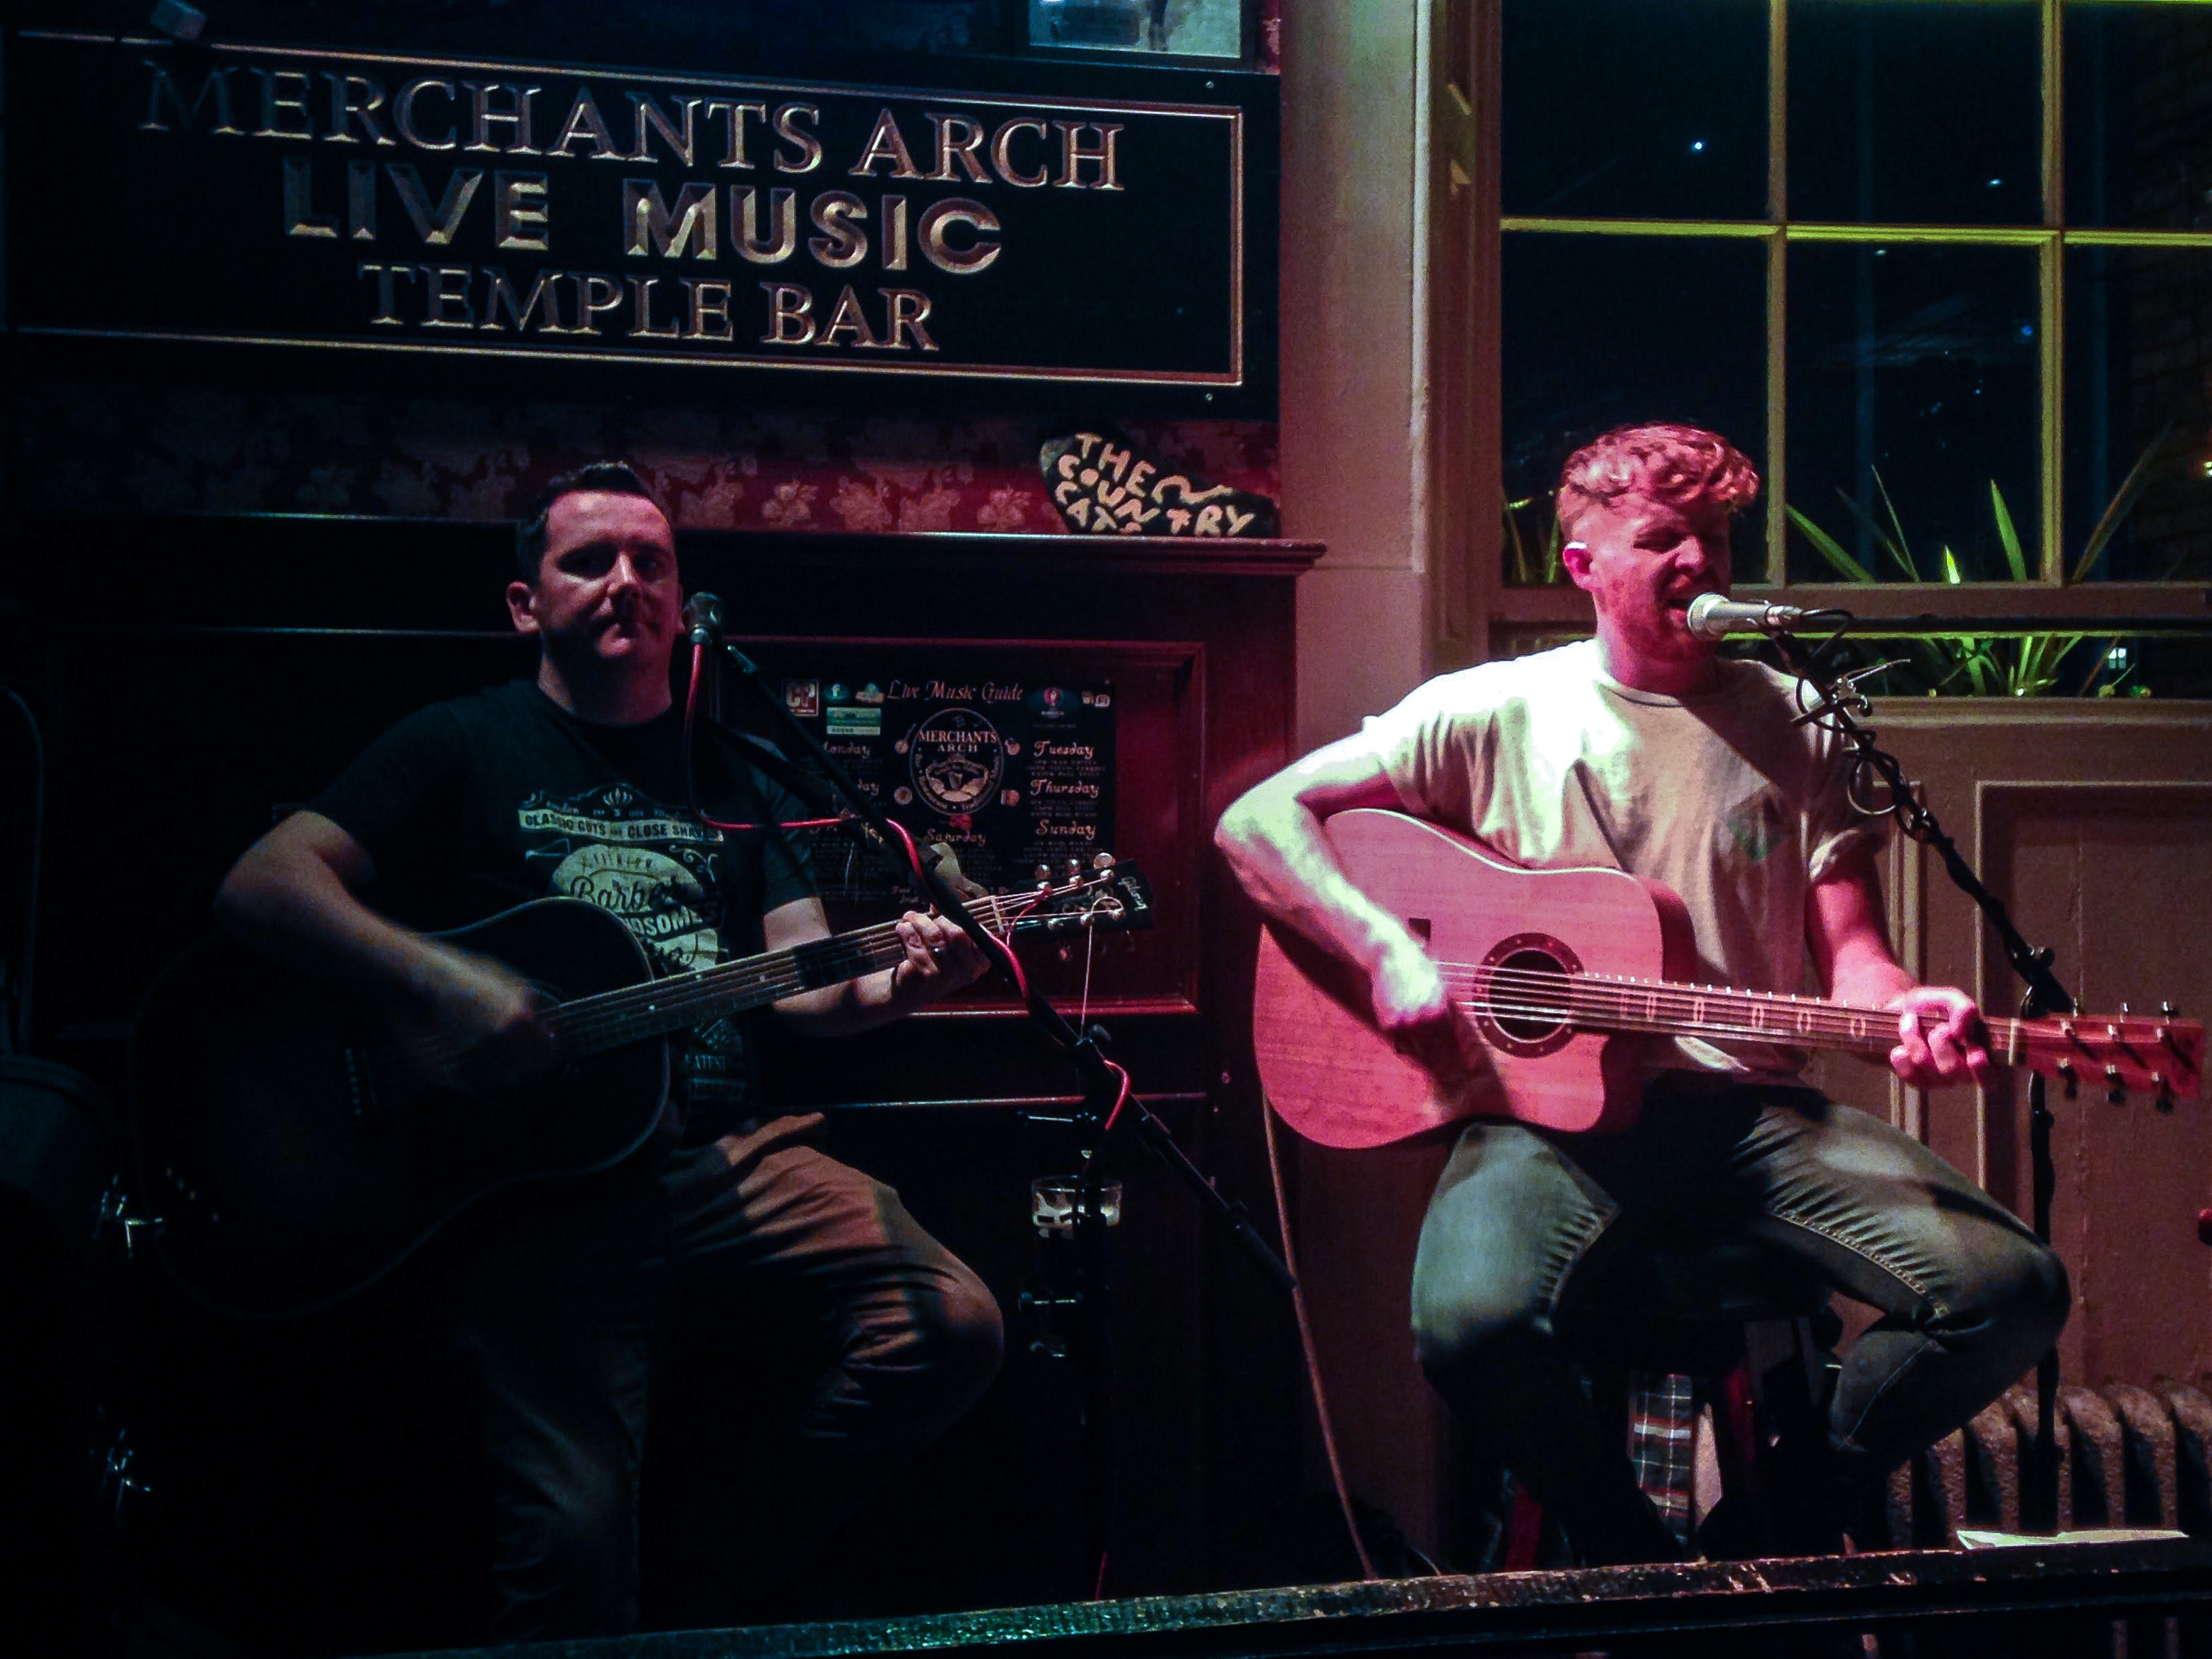 Merchants Arch pub live music Dublin